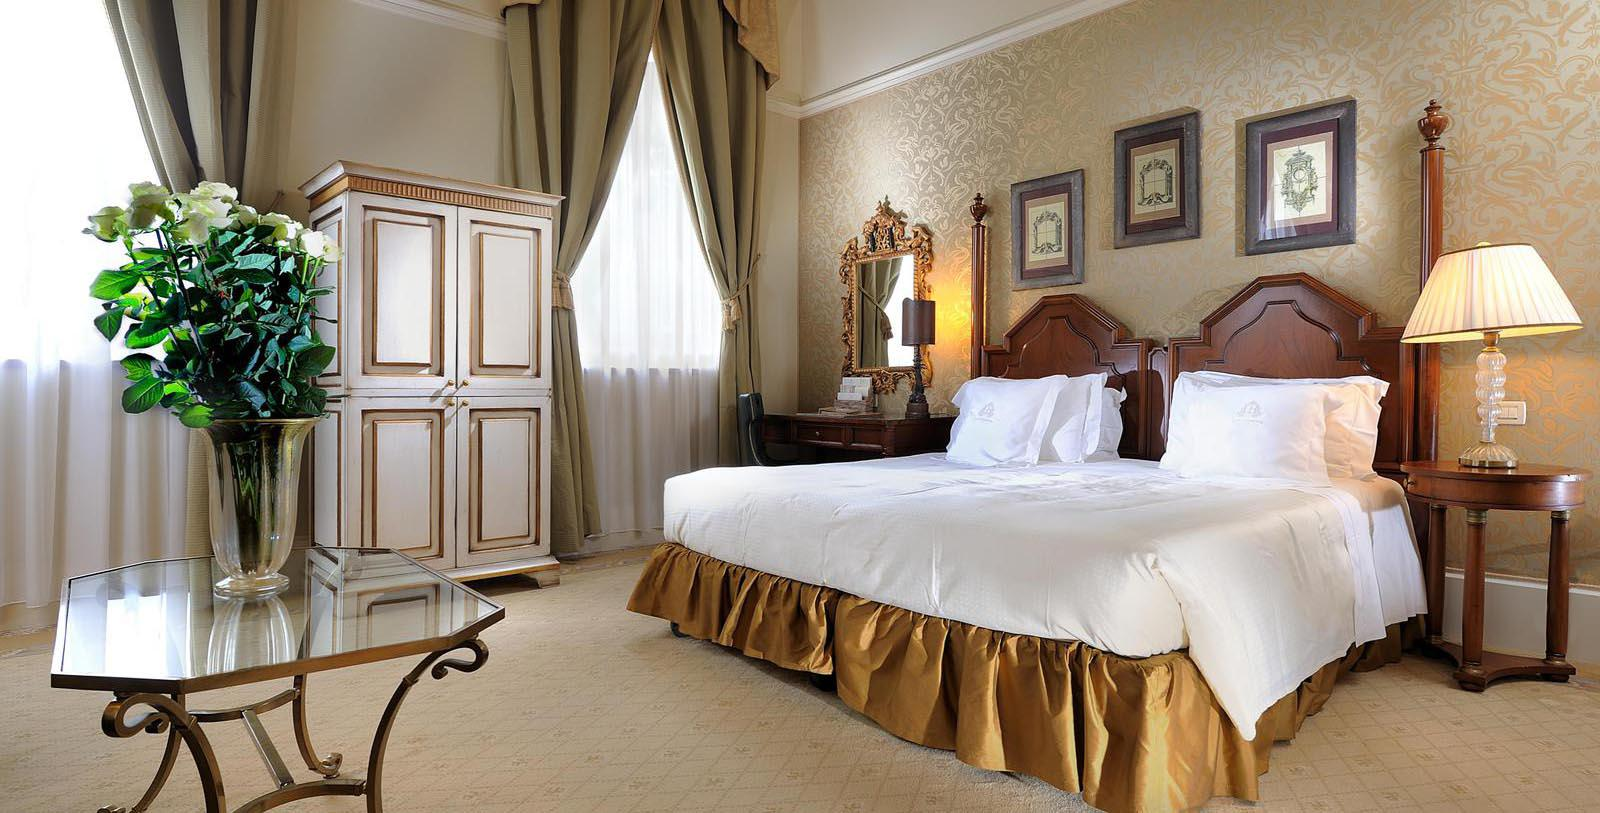 Image of Guestroom at San Clemente Palace Kempinski, 1131, Member of Historic Hotels Worldwide, in Venice, Italy, Location Map